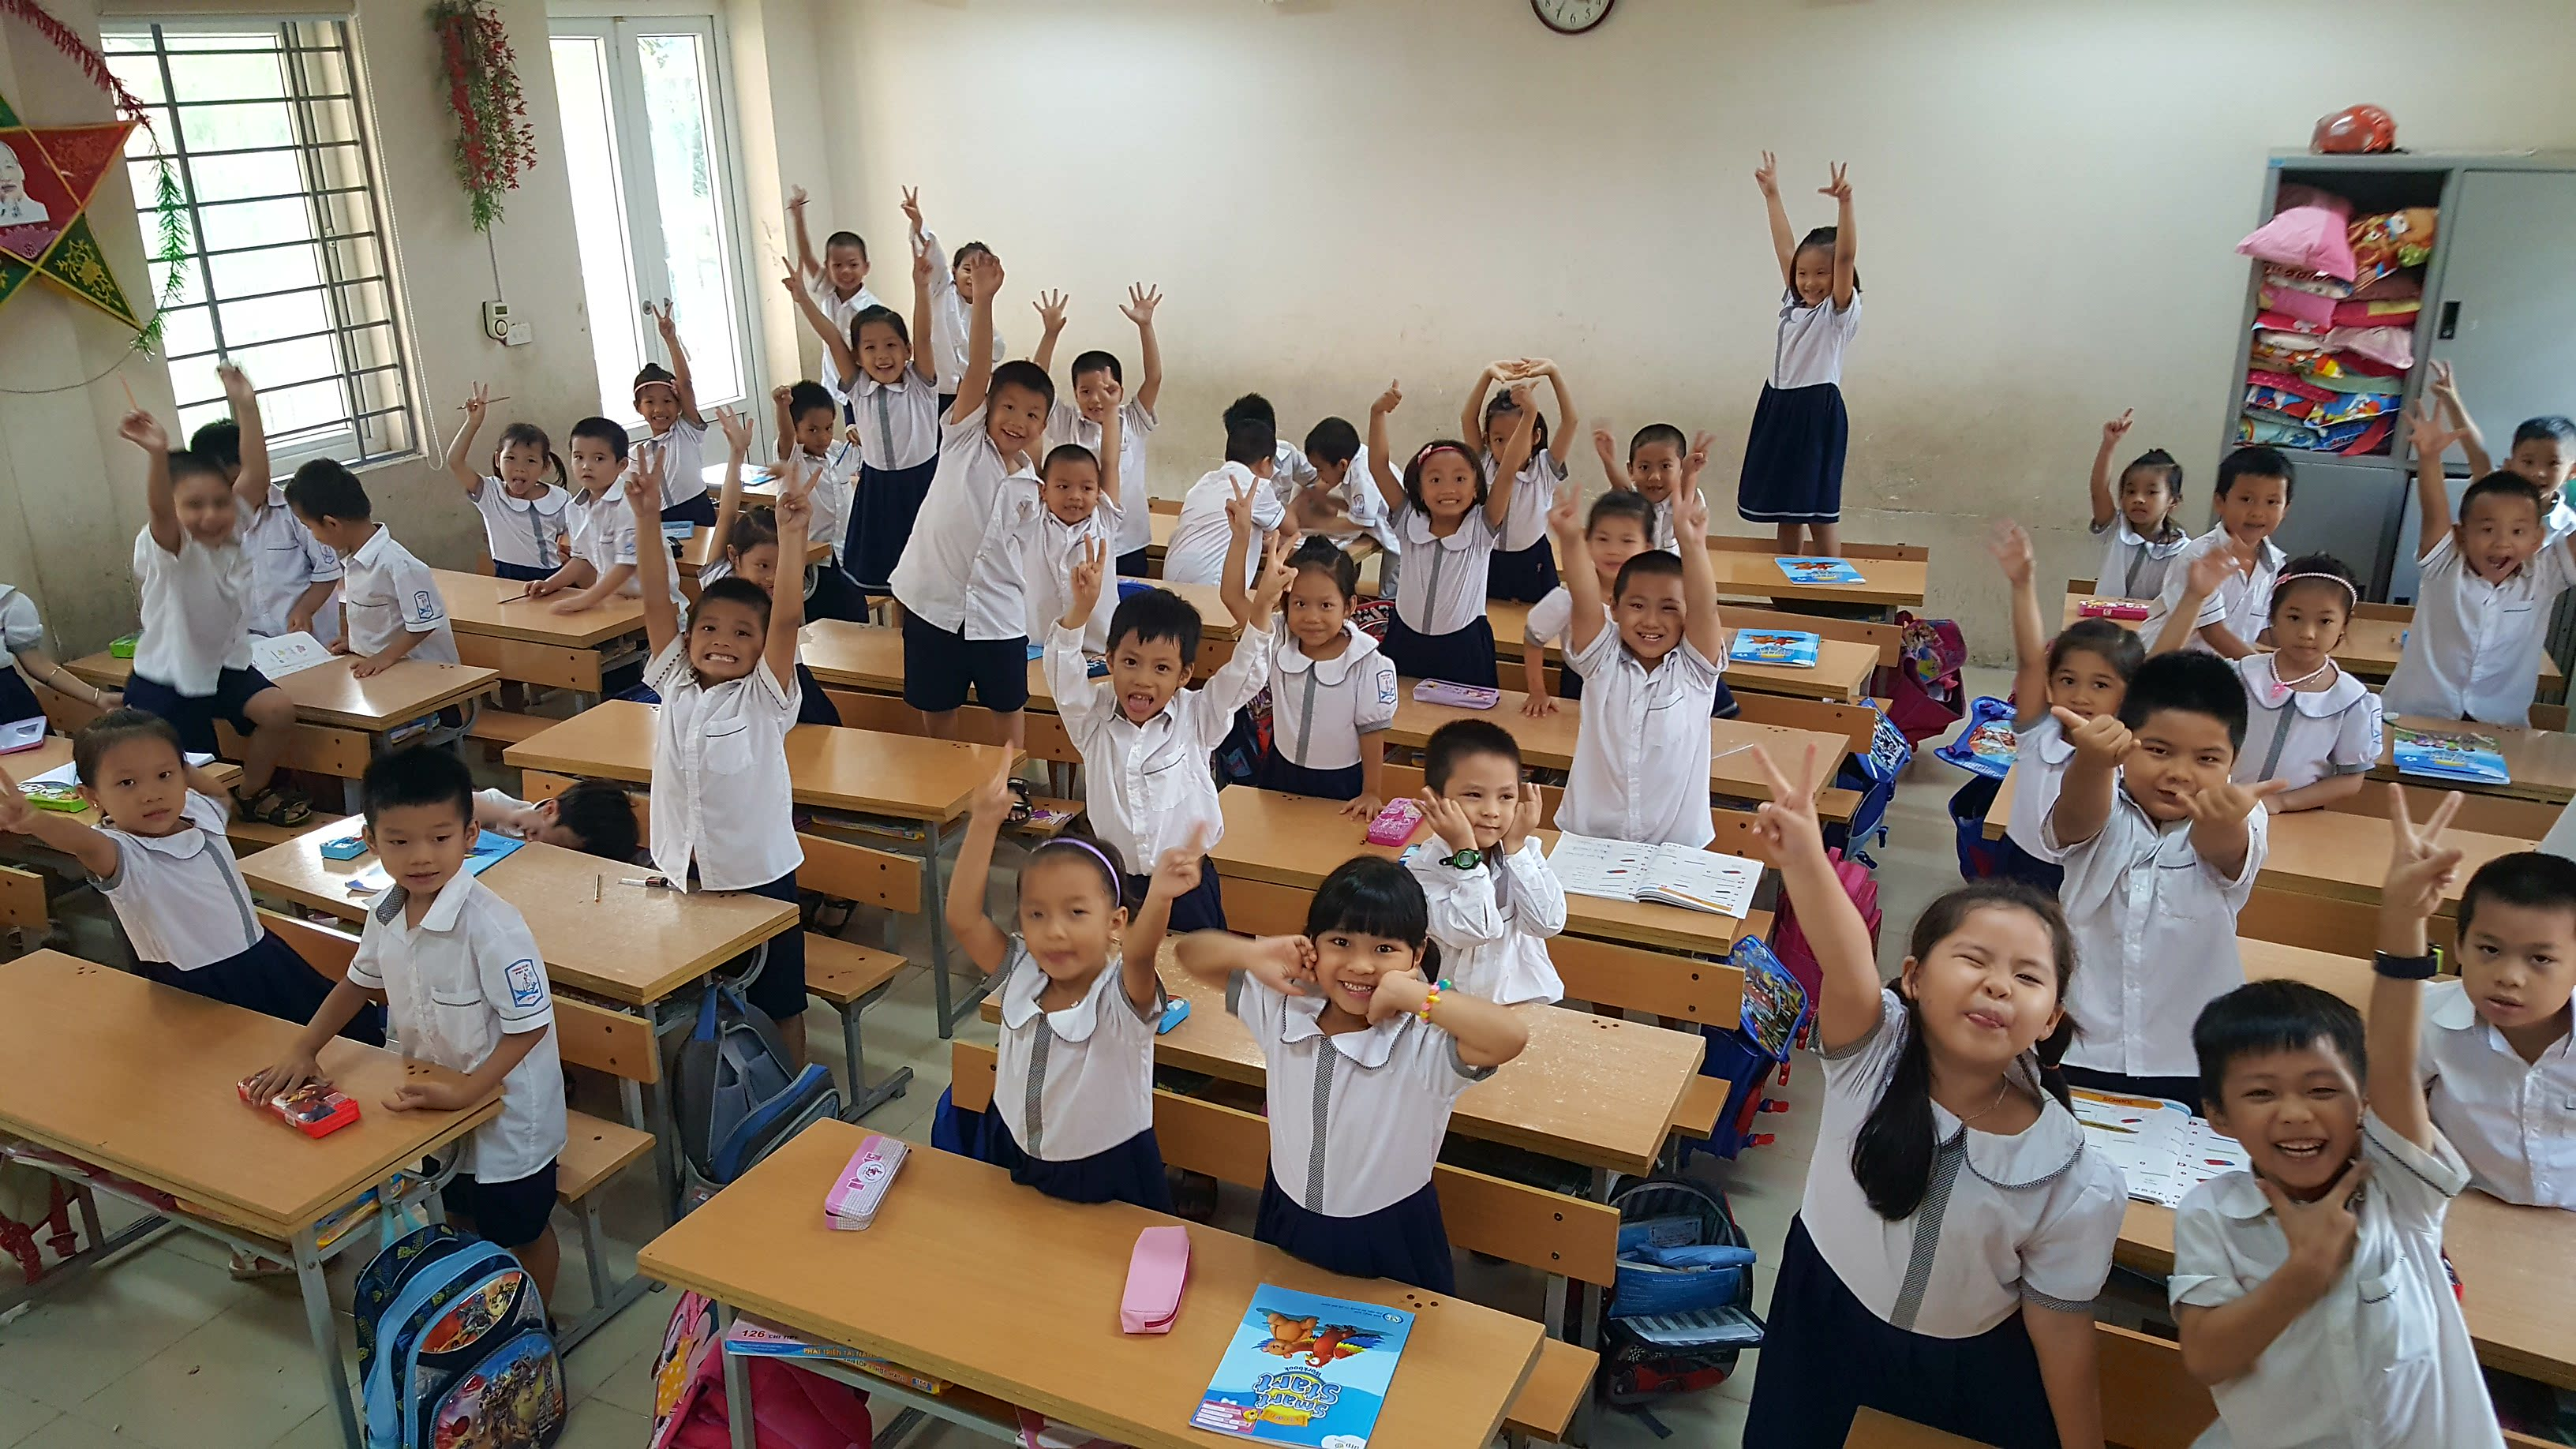 English students in class in Vietnam